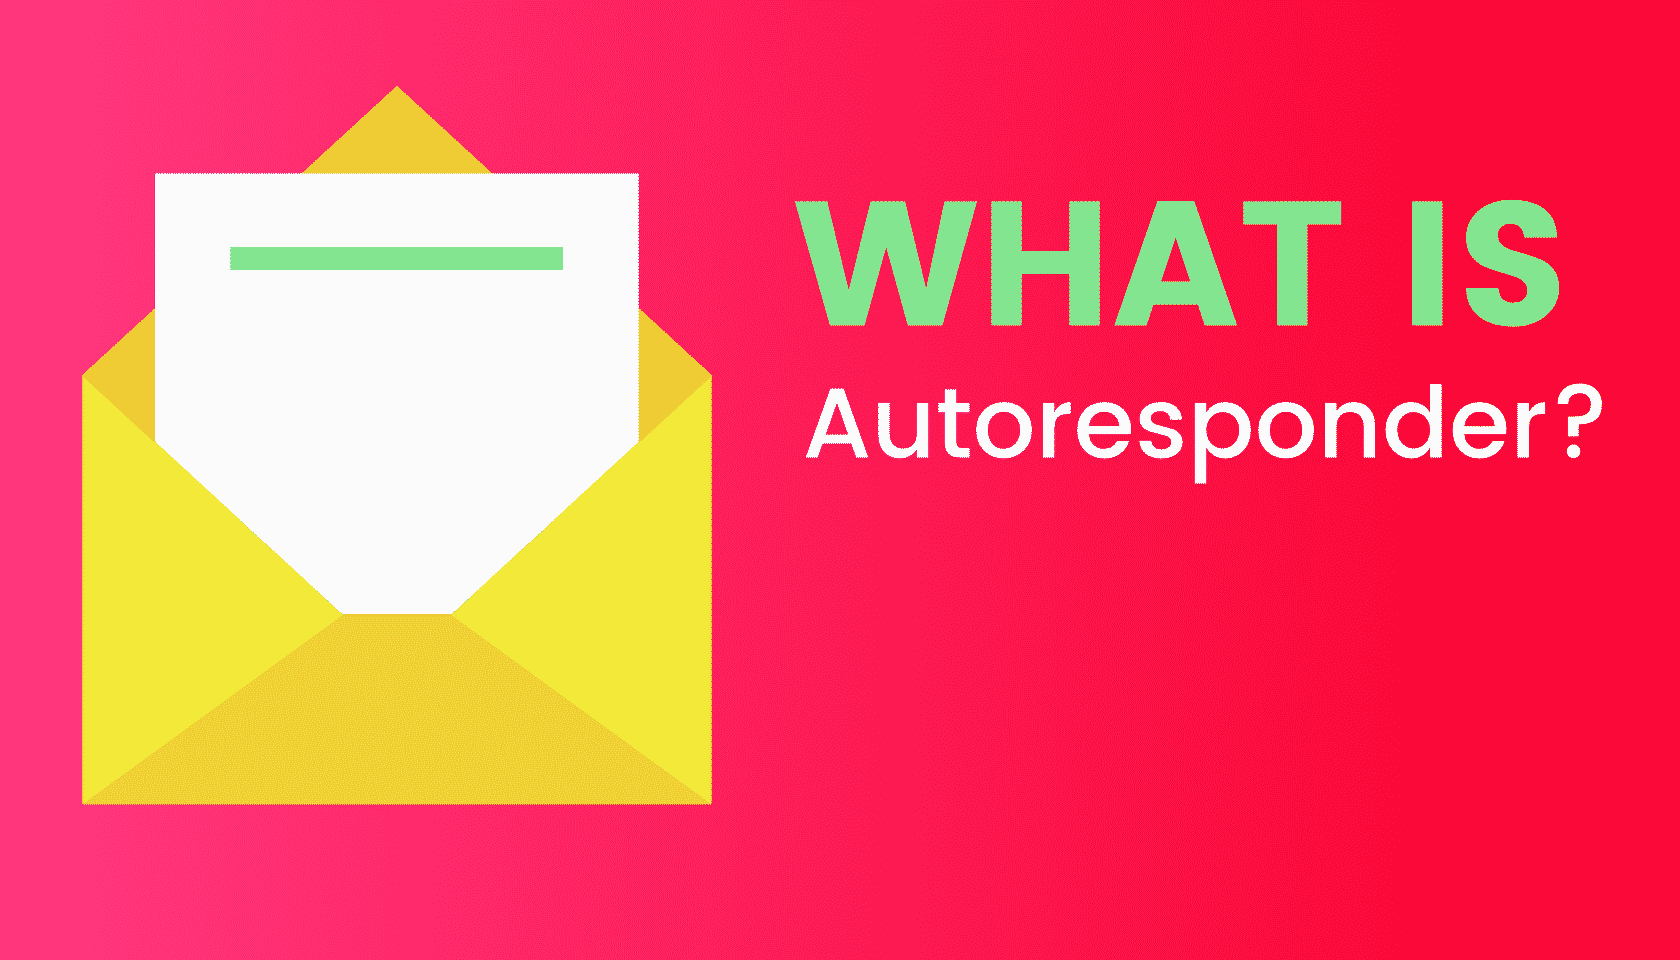 What is: Autoresponder?